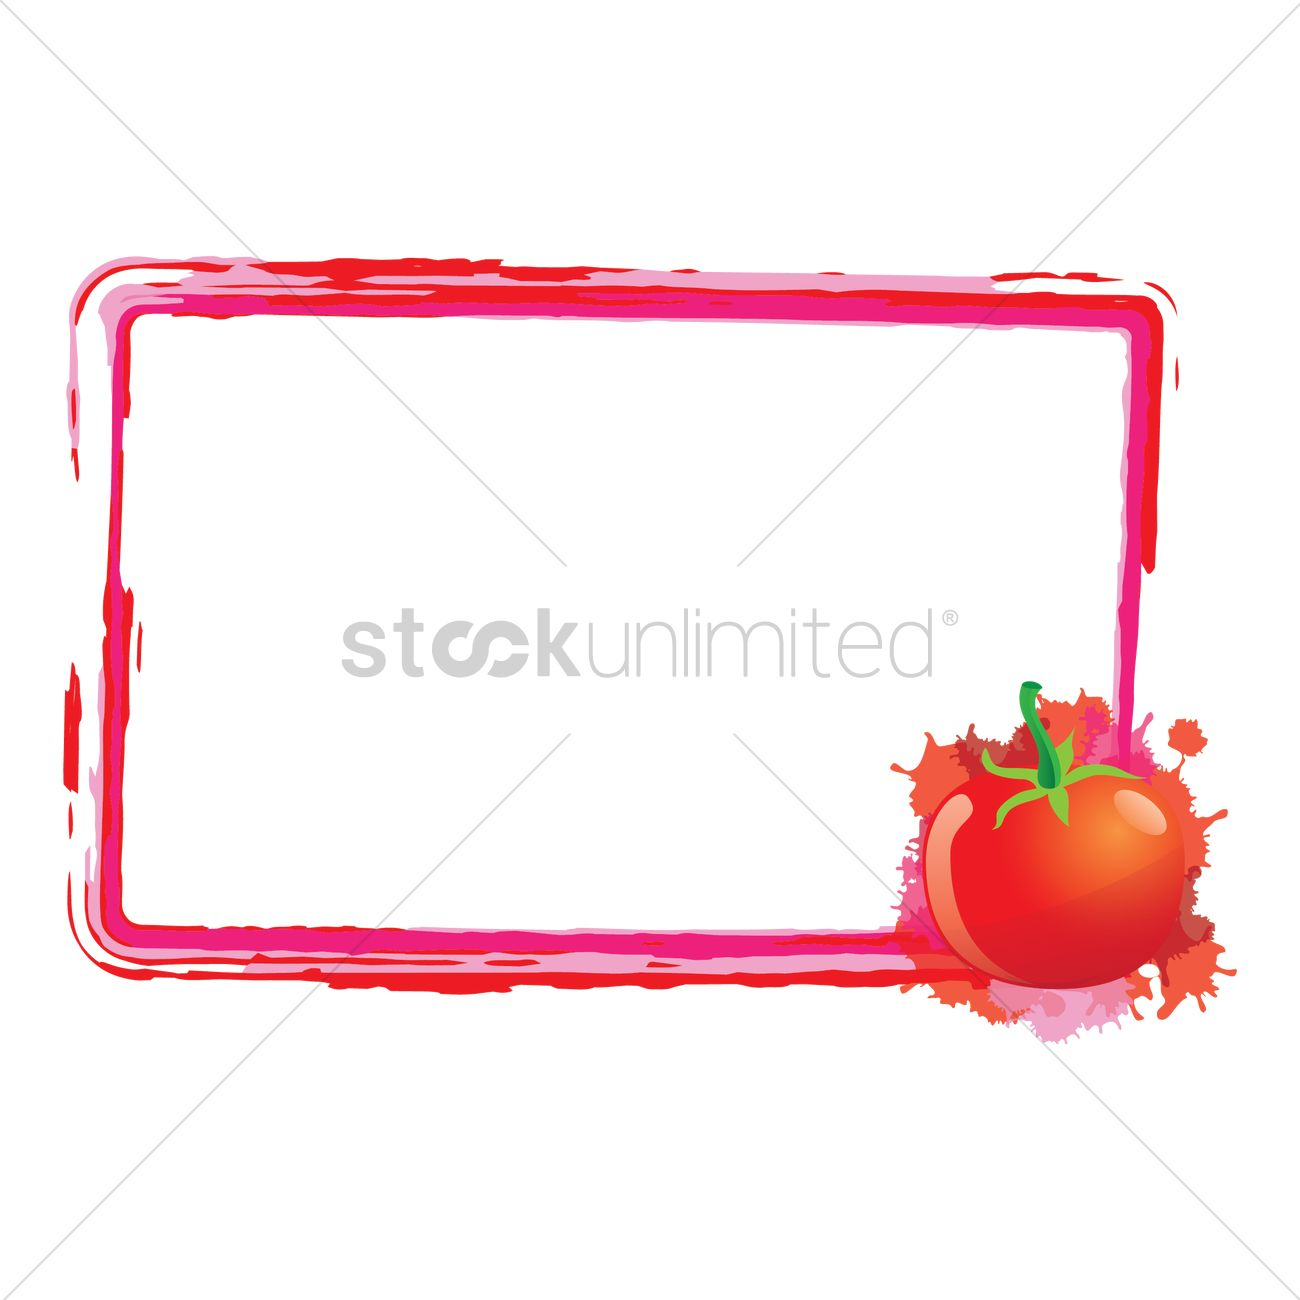 Tomato frame Vector Image - 1471220 | StockUnlimited